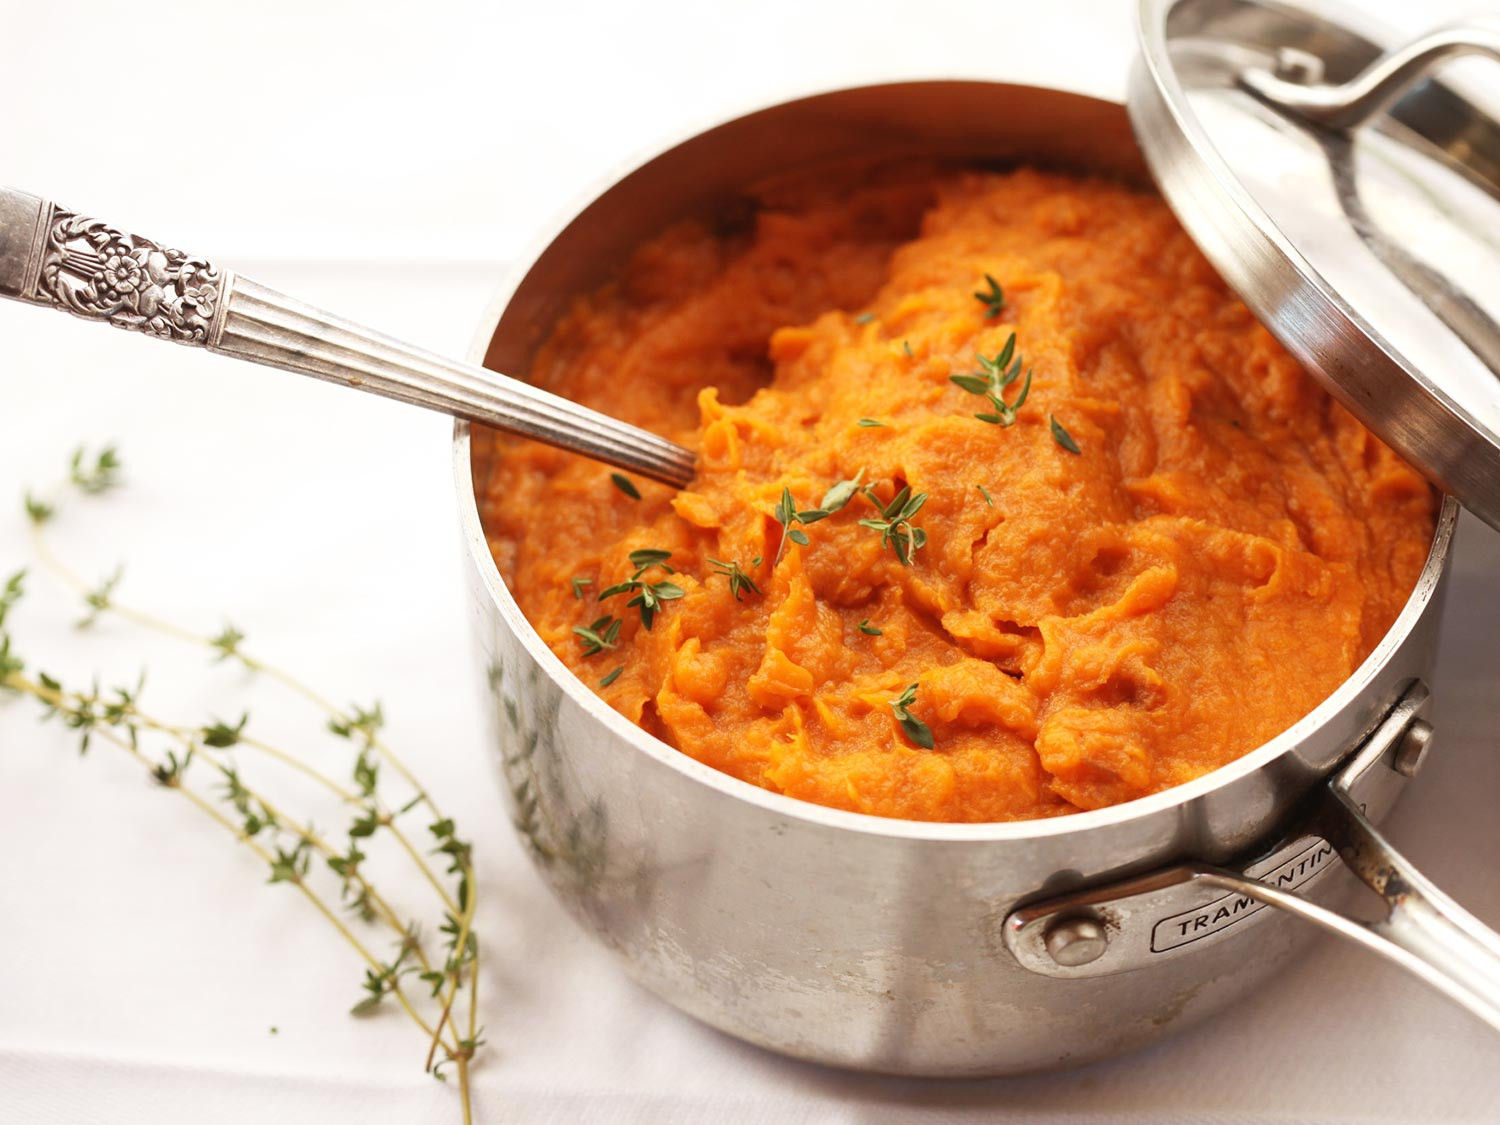 Sweet Potato Recipes For Thanksgiving  The Best Mashed Sweet Potatoes Recipe